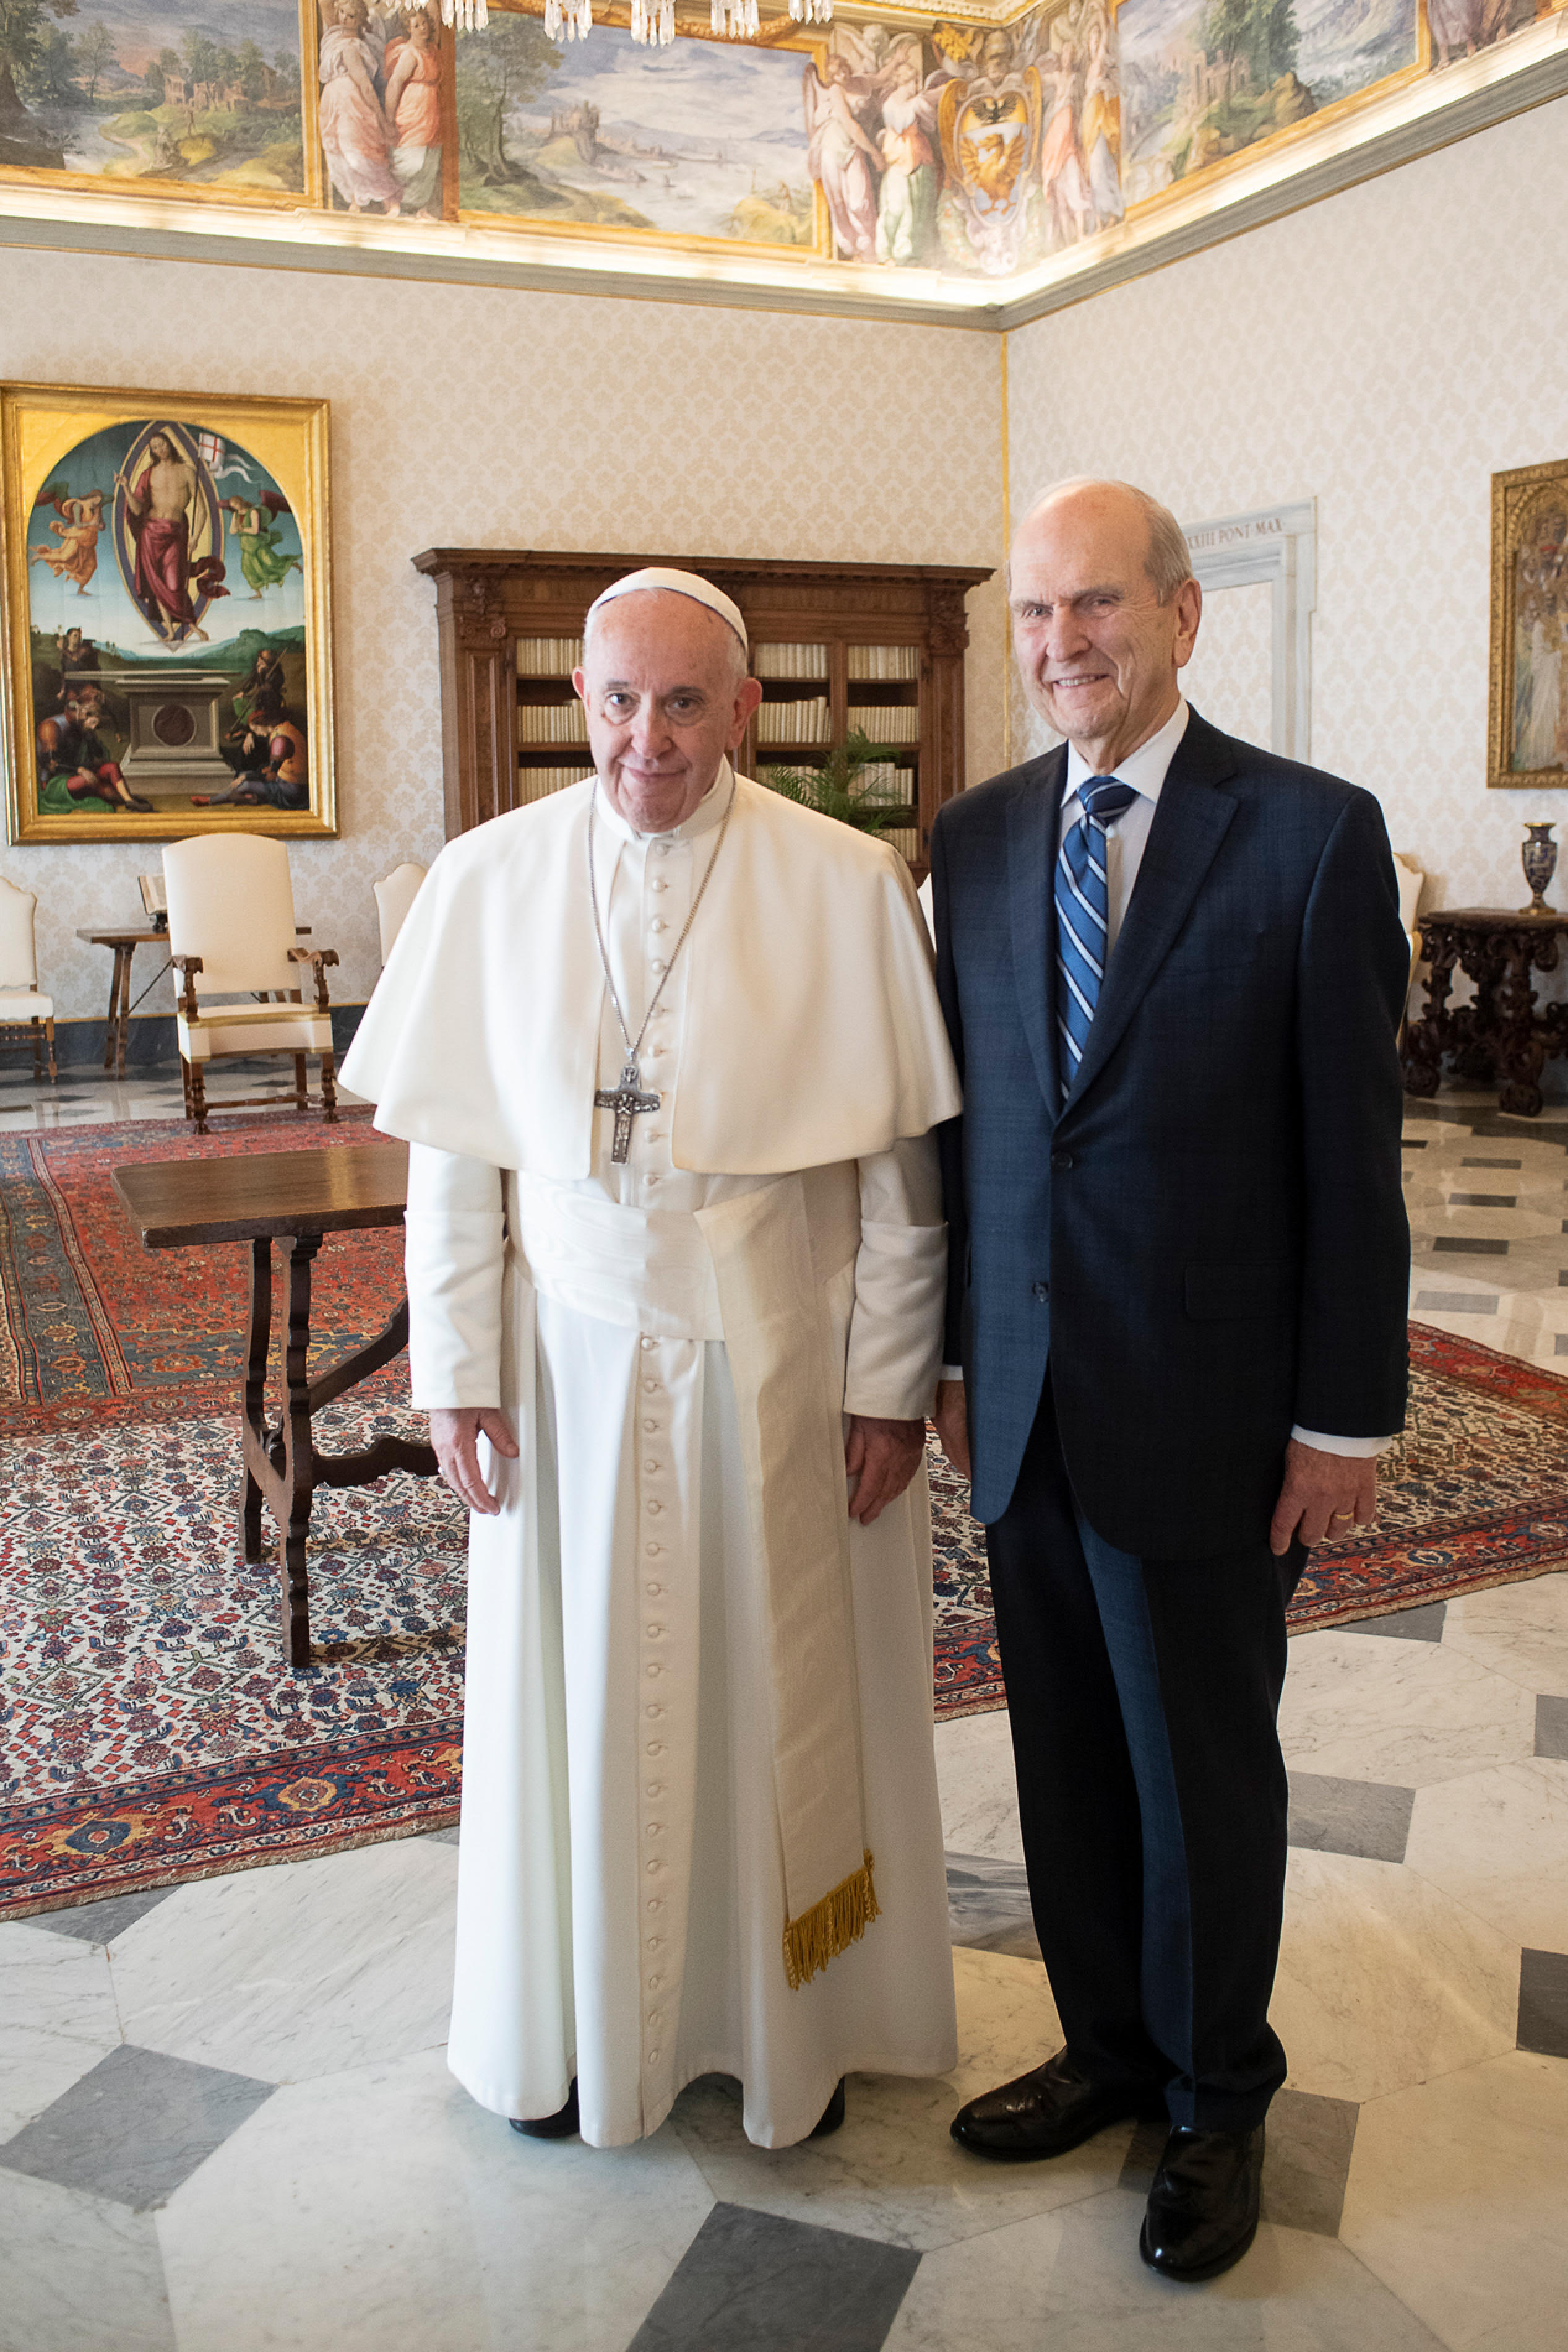 President Russell M. Nelson of The Church of Jesus Christ of Latter-day Saints meets with Pope Francis at the Vatican in Rome, Italy, on Saturday, March 9, 2019.